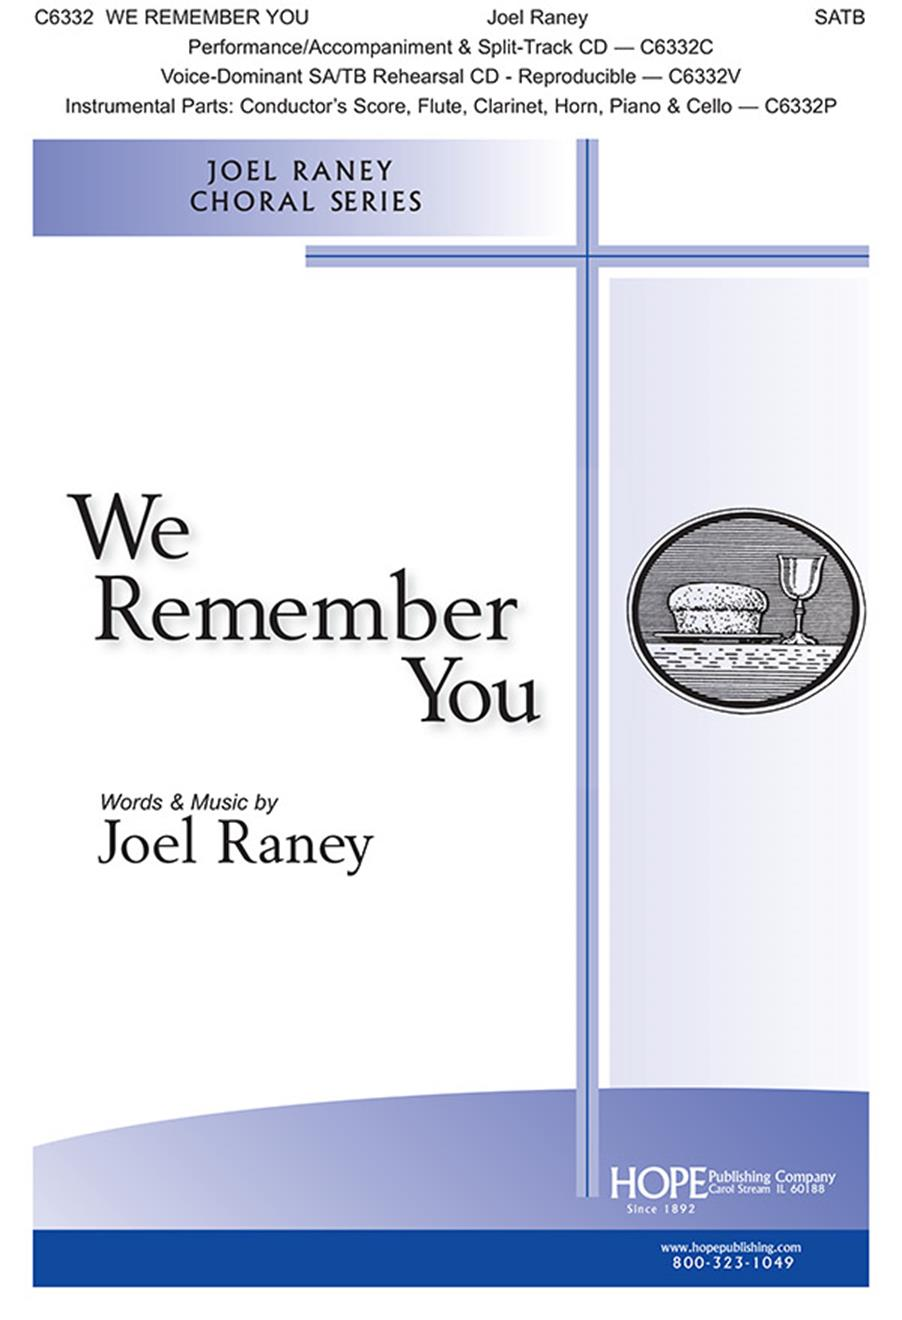 We Remember You - SATB Cover Image